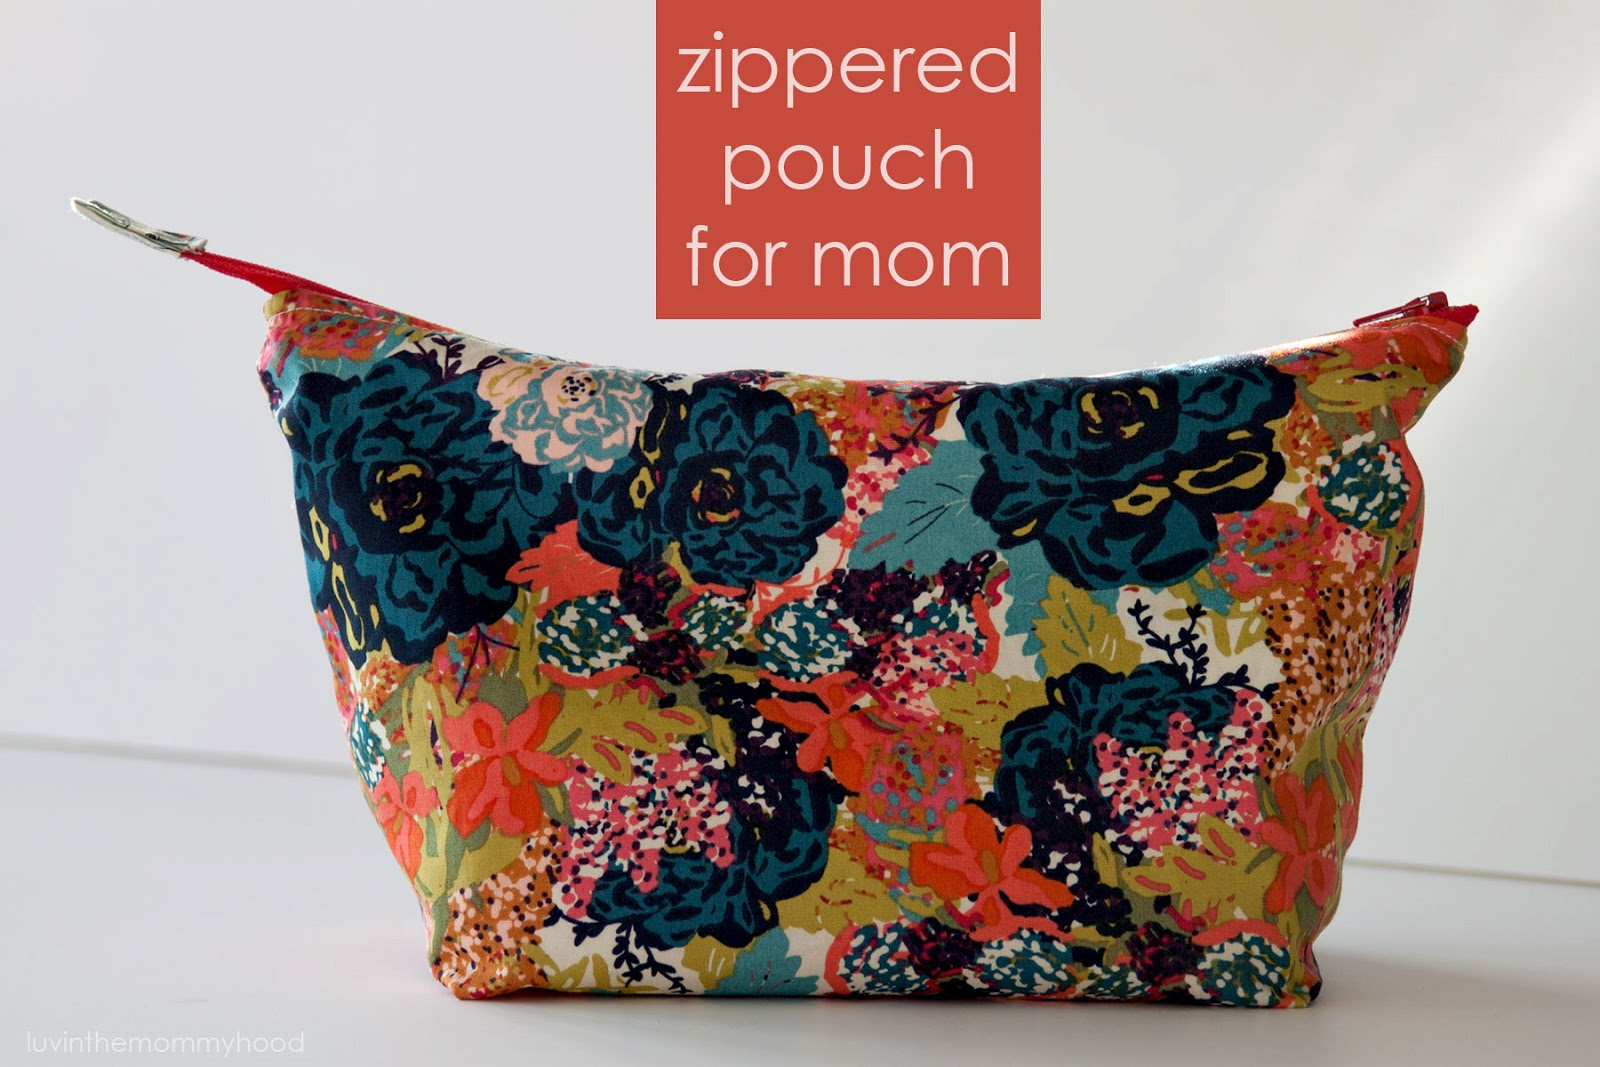 open wide zippered pouch on www.luvinthemommyhood.com